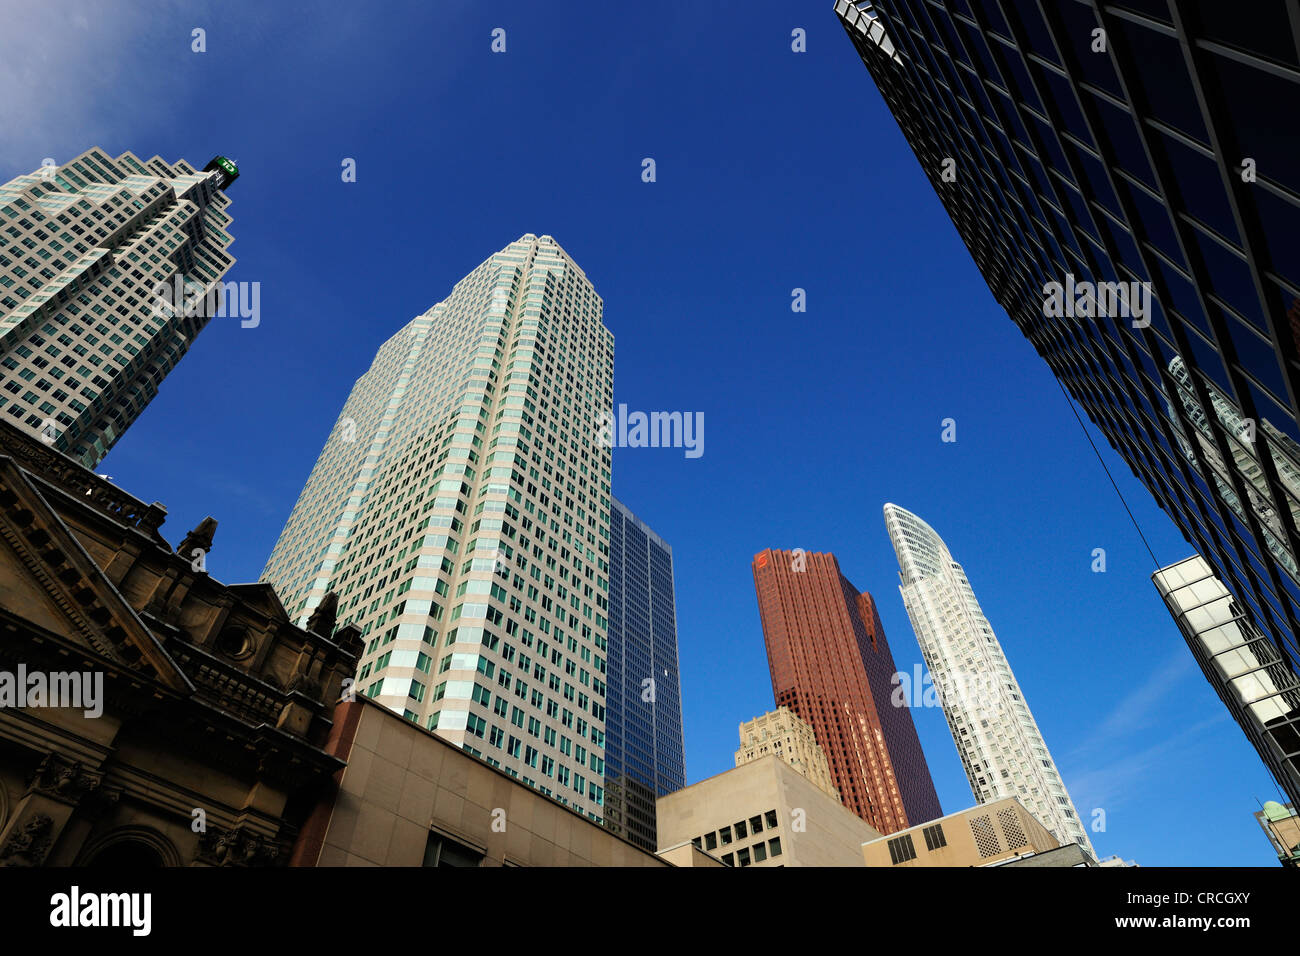 Skyscrapers on Yonge Street in Toronto, Ontario, Canada, North America - Stock Image